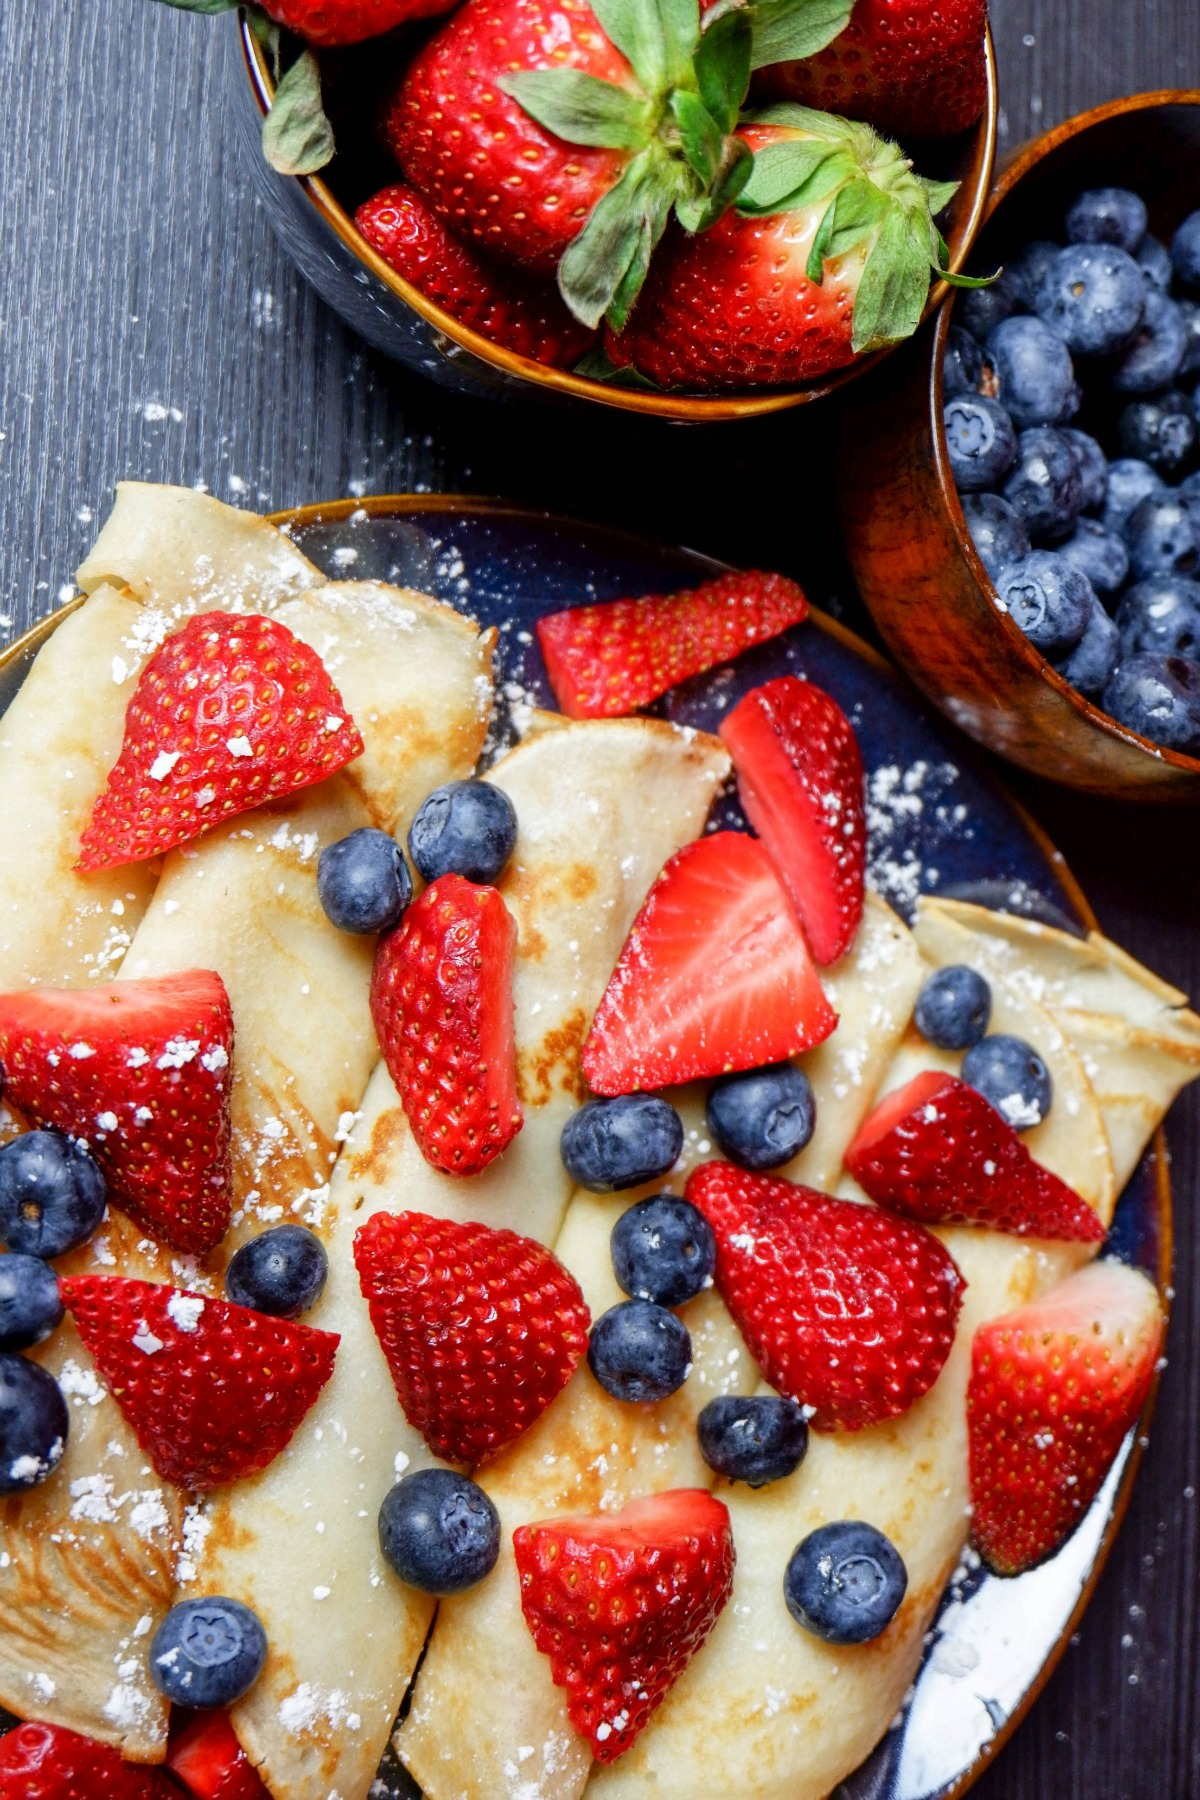 Crepes are delicious to serve for dessert, breakfast or special occasions. Even dinner for savory crepes!